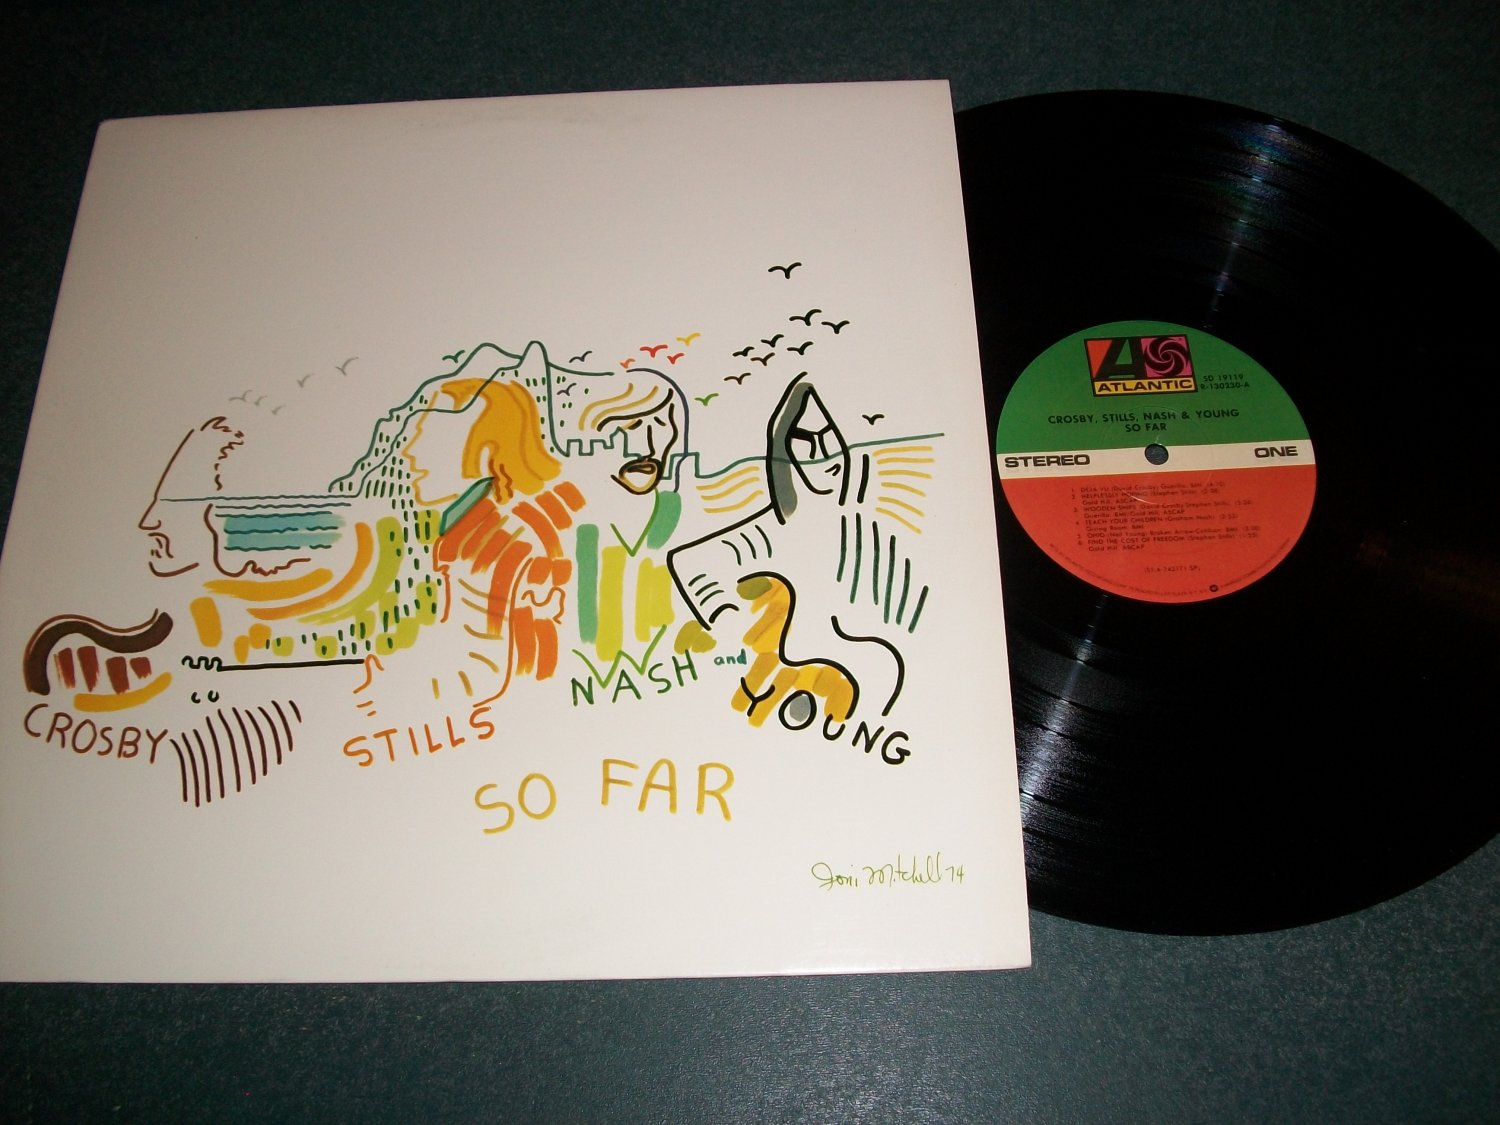 Crosby Stills Nash And Young - So Far - Record LP